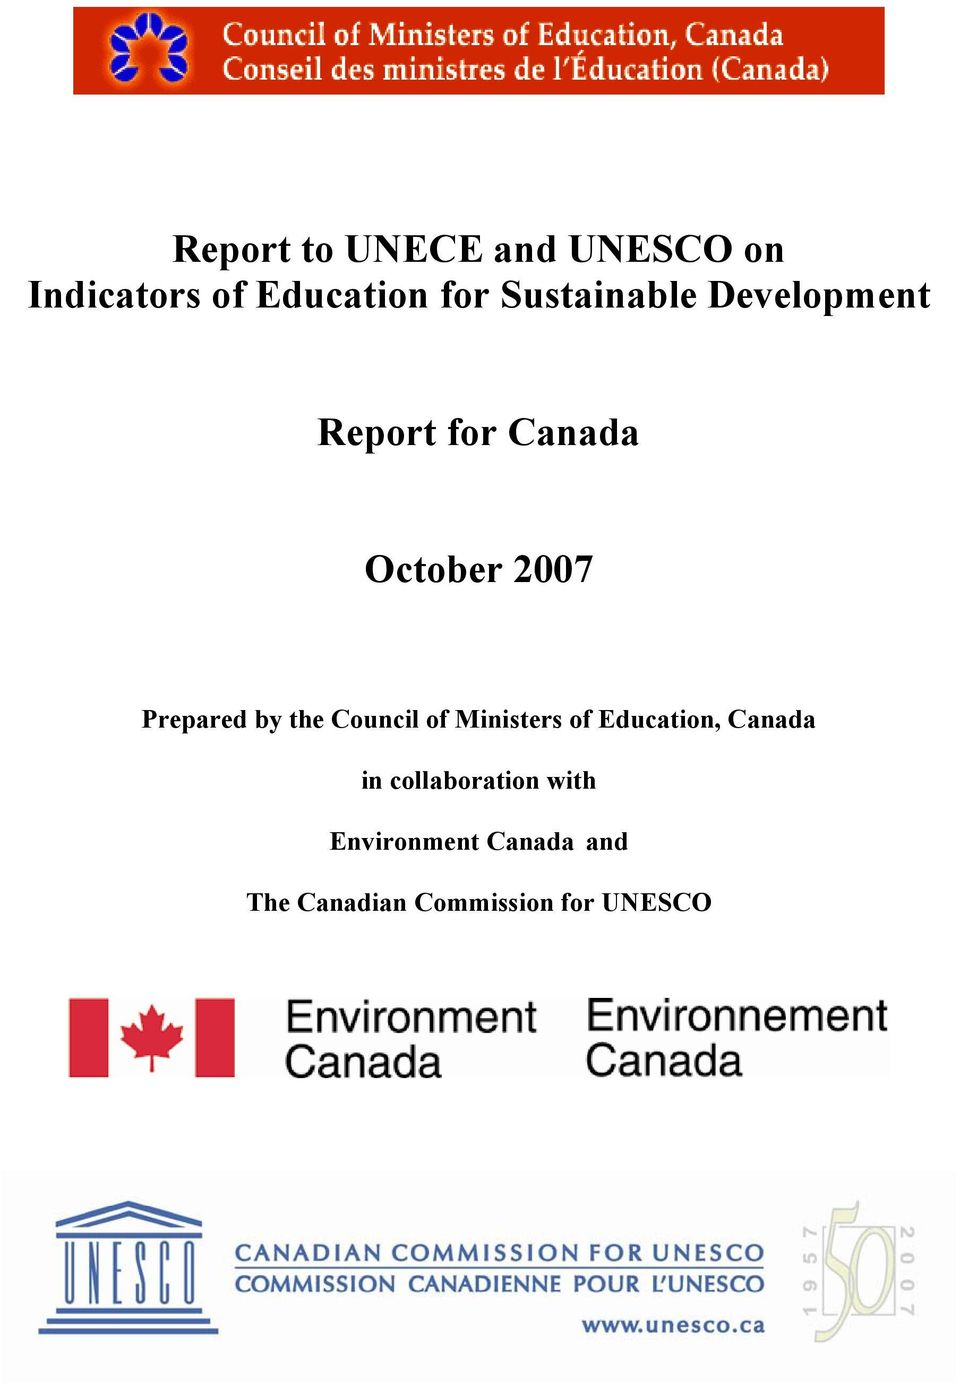 Prepared by the Council of Ministers of Education, Canada in